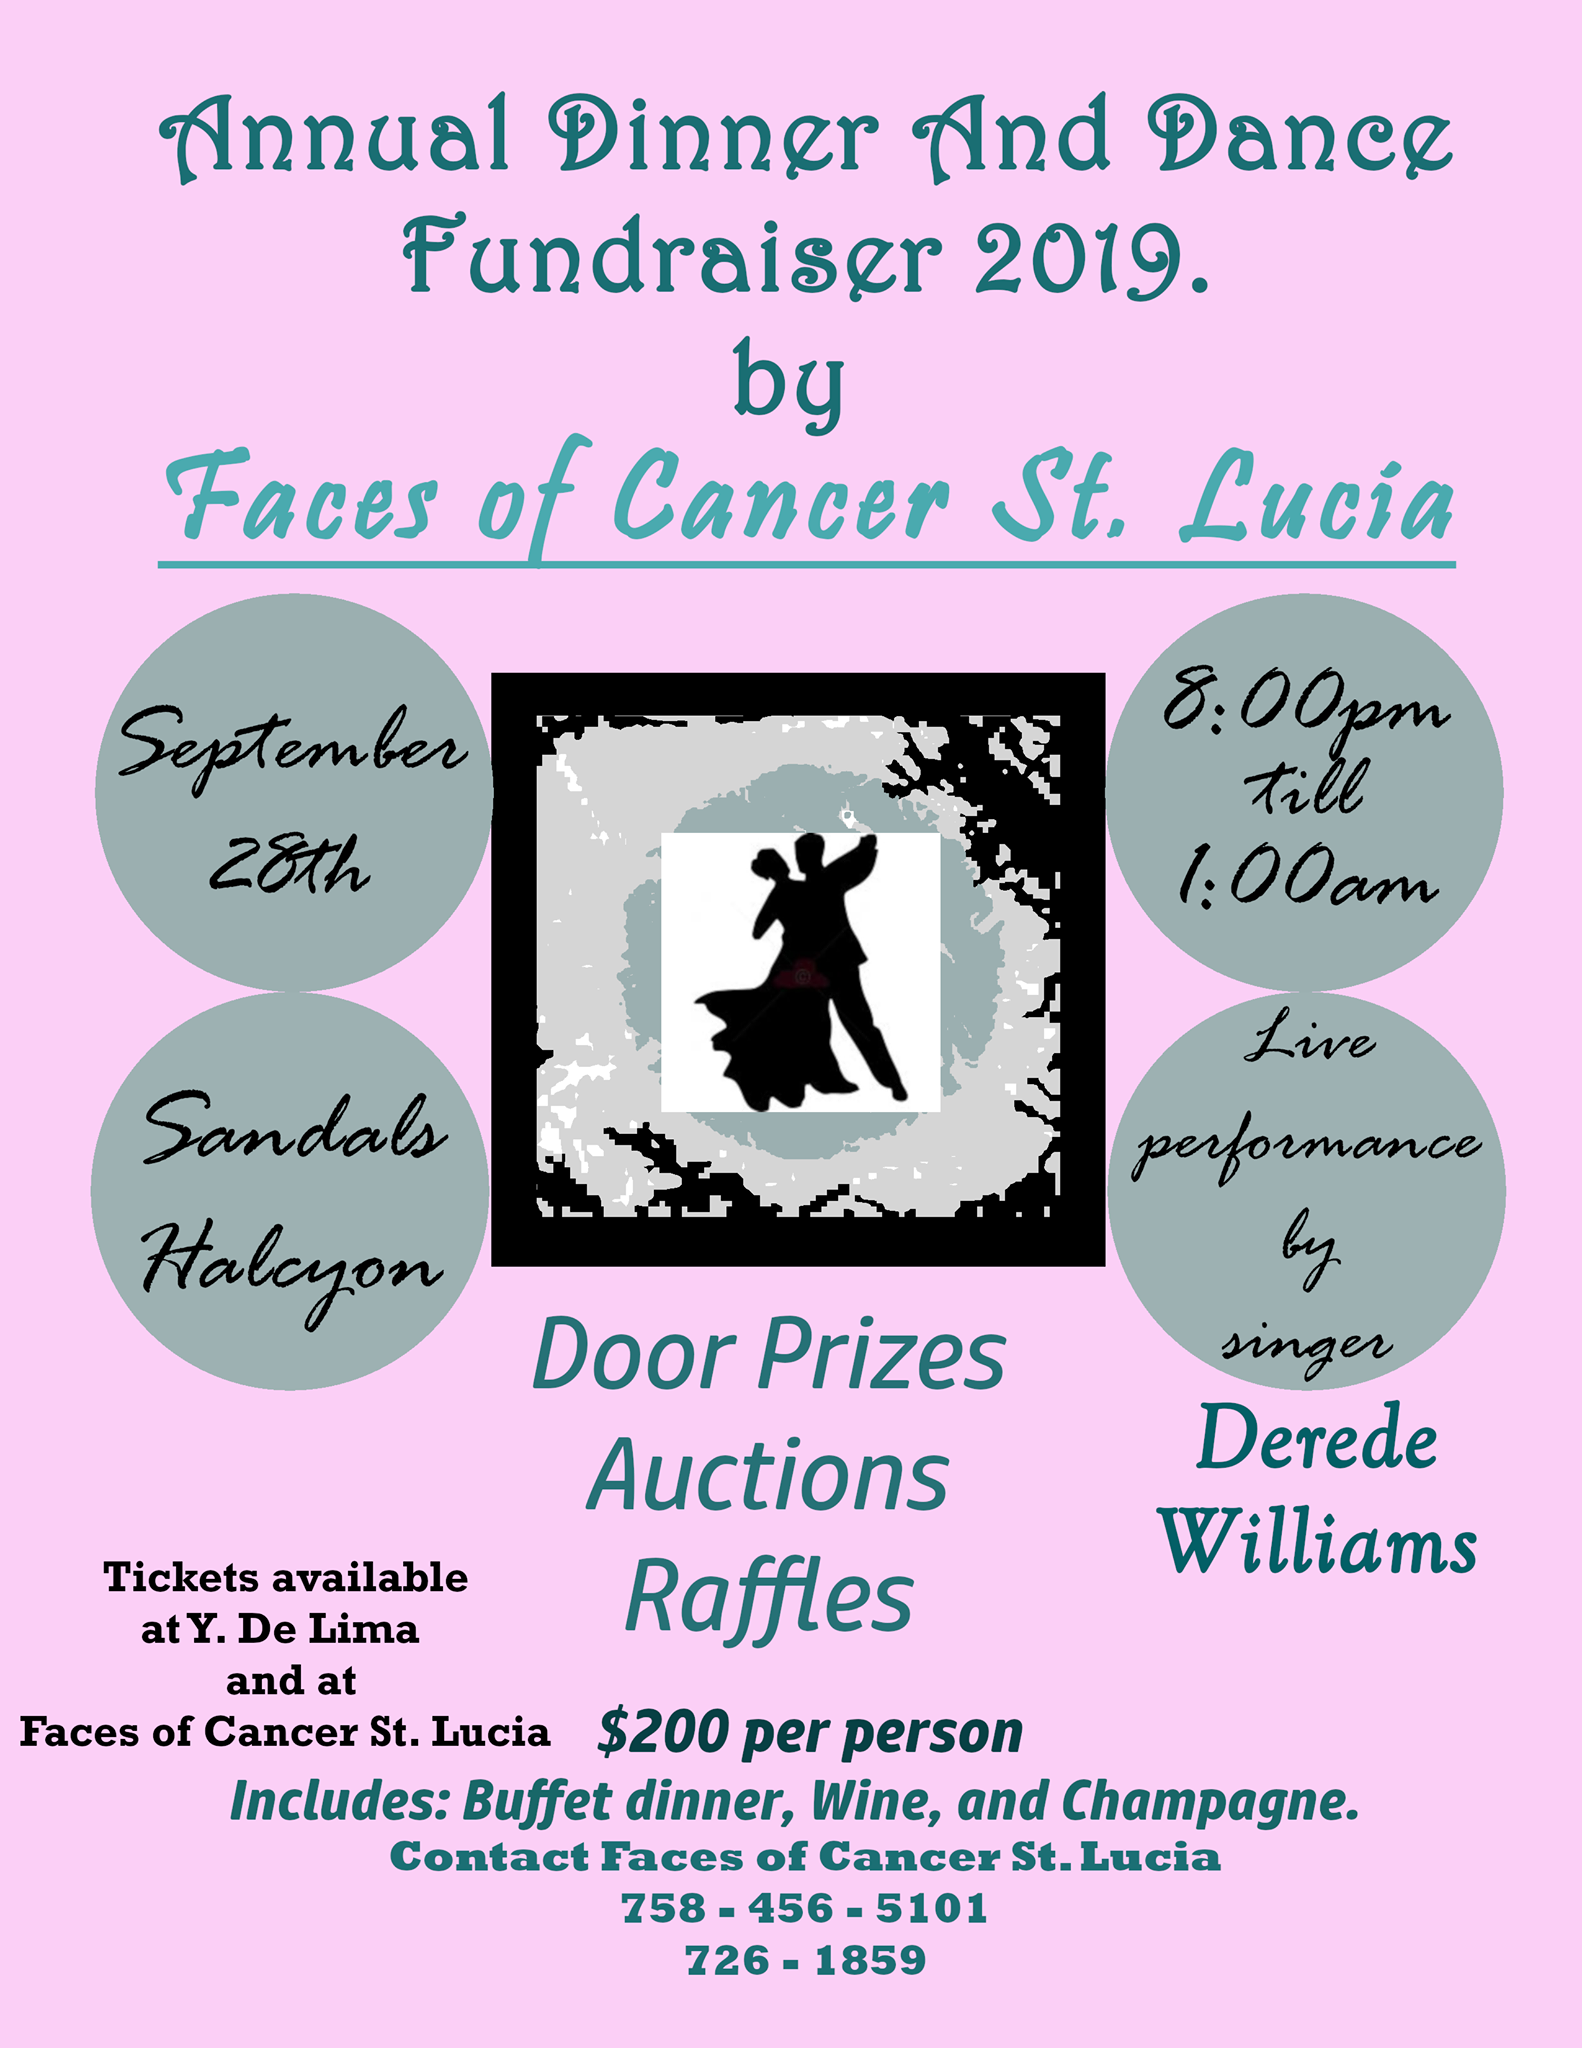 faces of cancer fundraising dinner and dance at sandals halcyon with derede williams